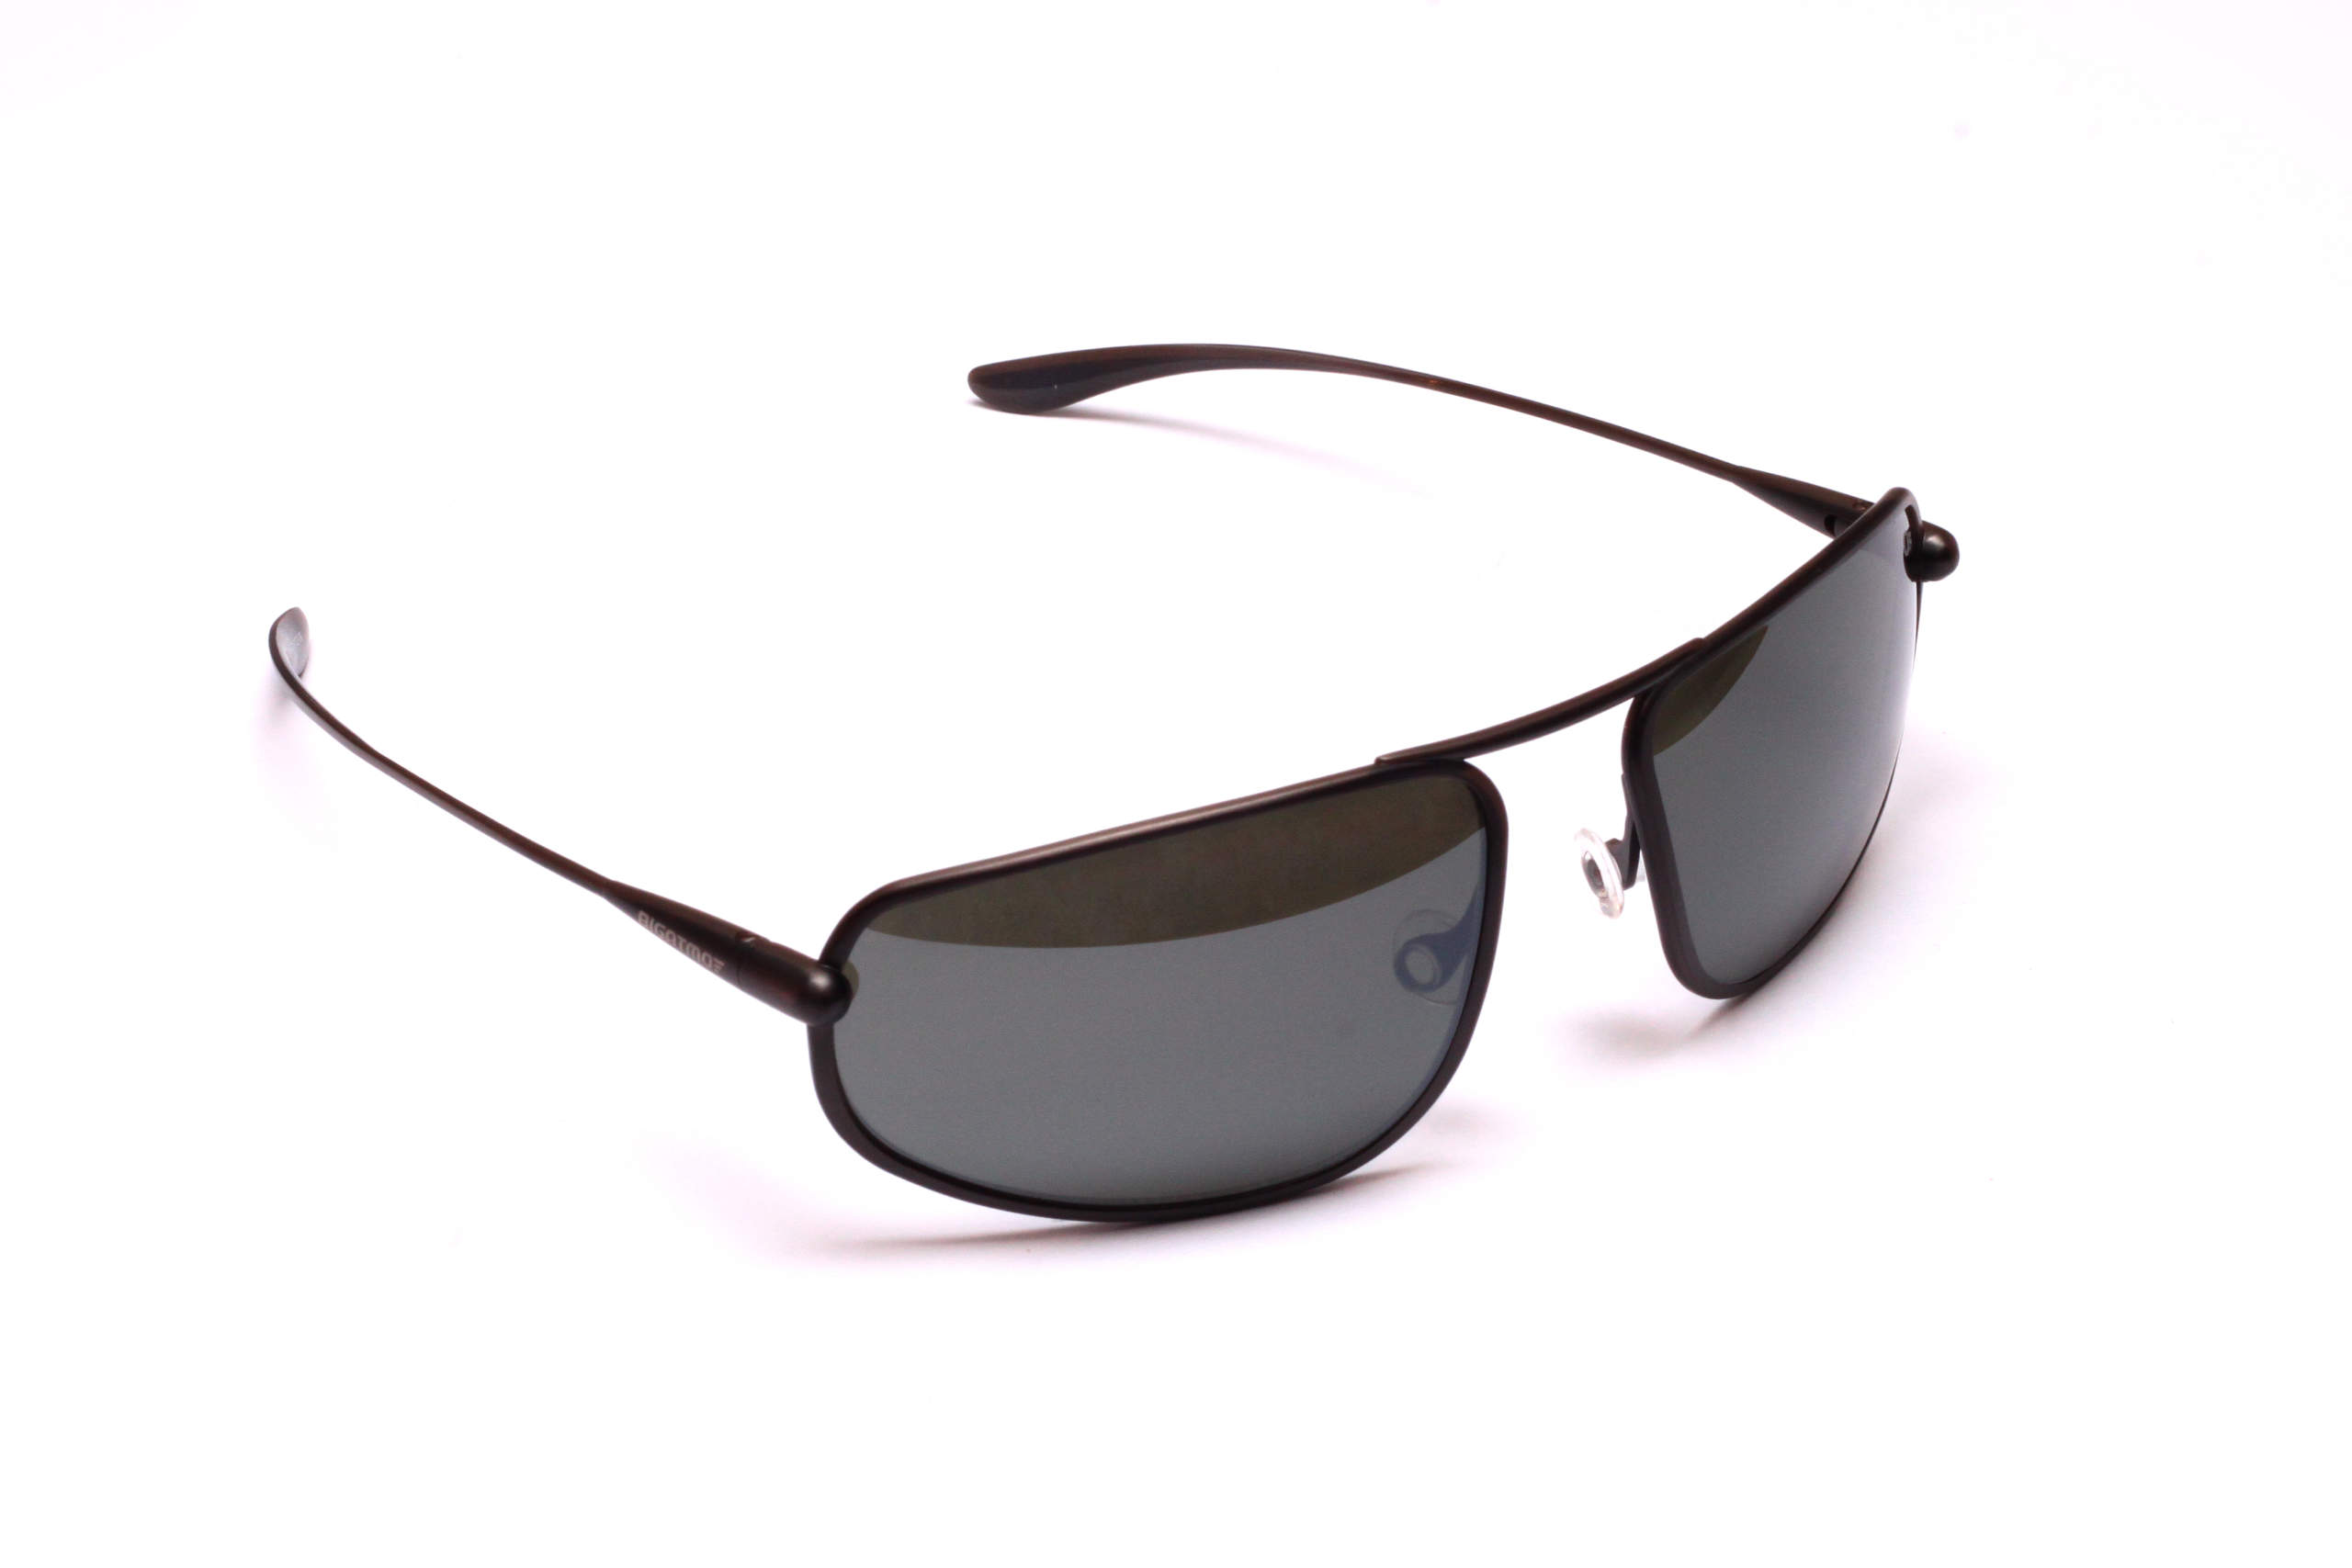 Strato - Graphite Titanium Frame Light Silver Mirror Grey Polarized Sunglasses